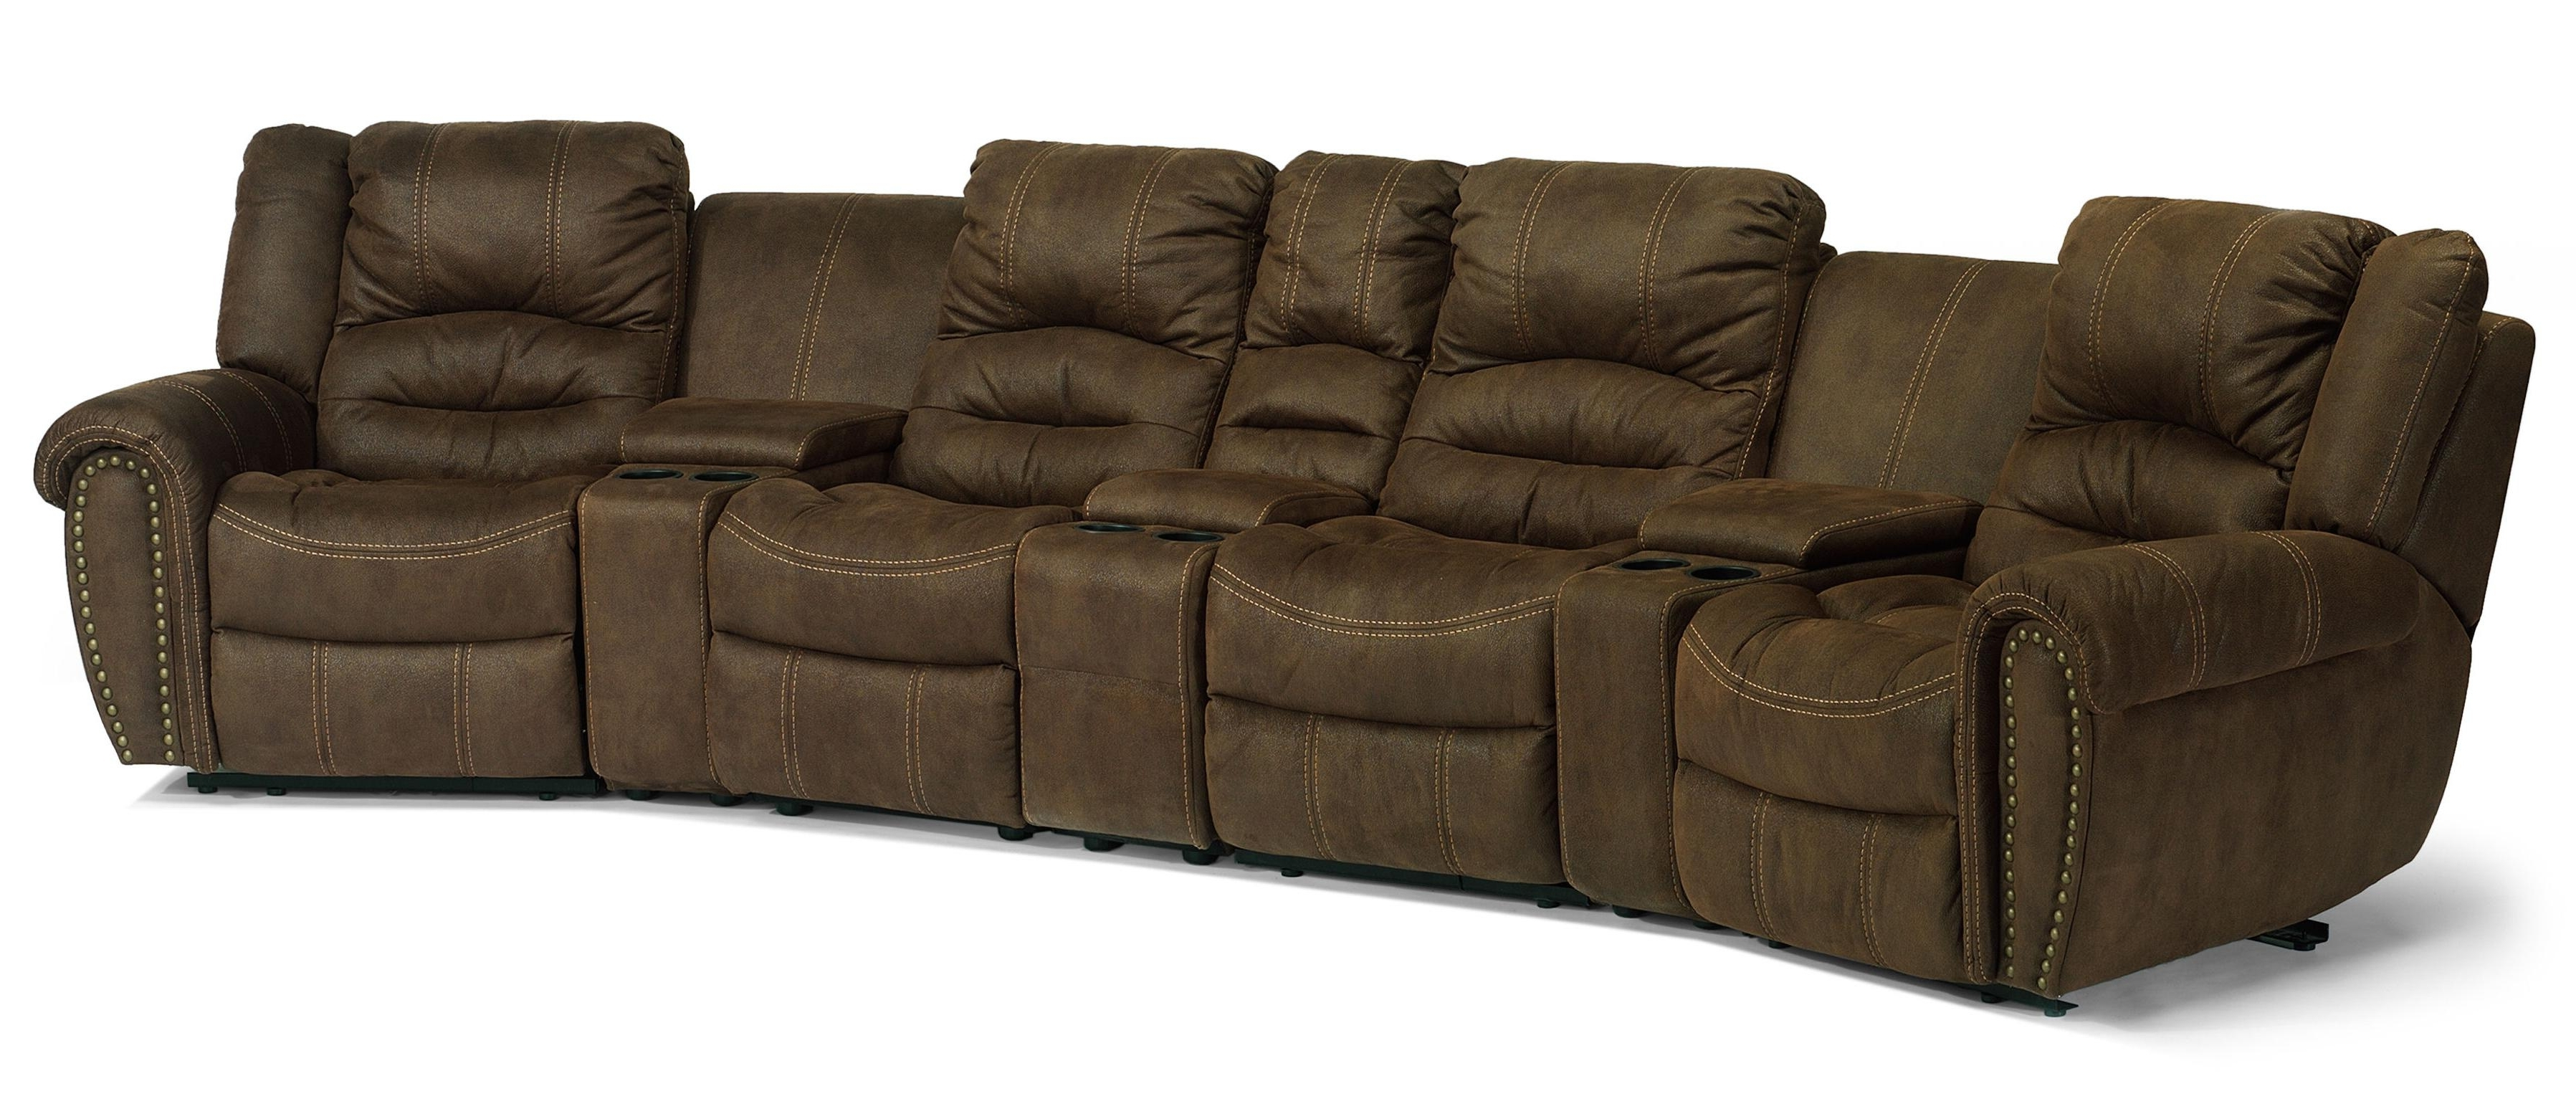 Best And Newest Kansas City Sectional Sofas With Flexsteel Latitudes – New Town Curved Reclining Sectional Sofa (View 11 of 15)